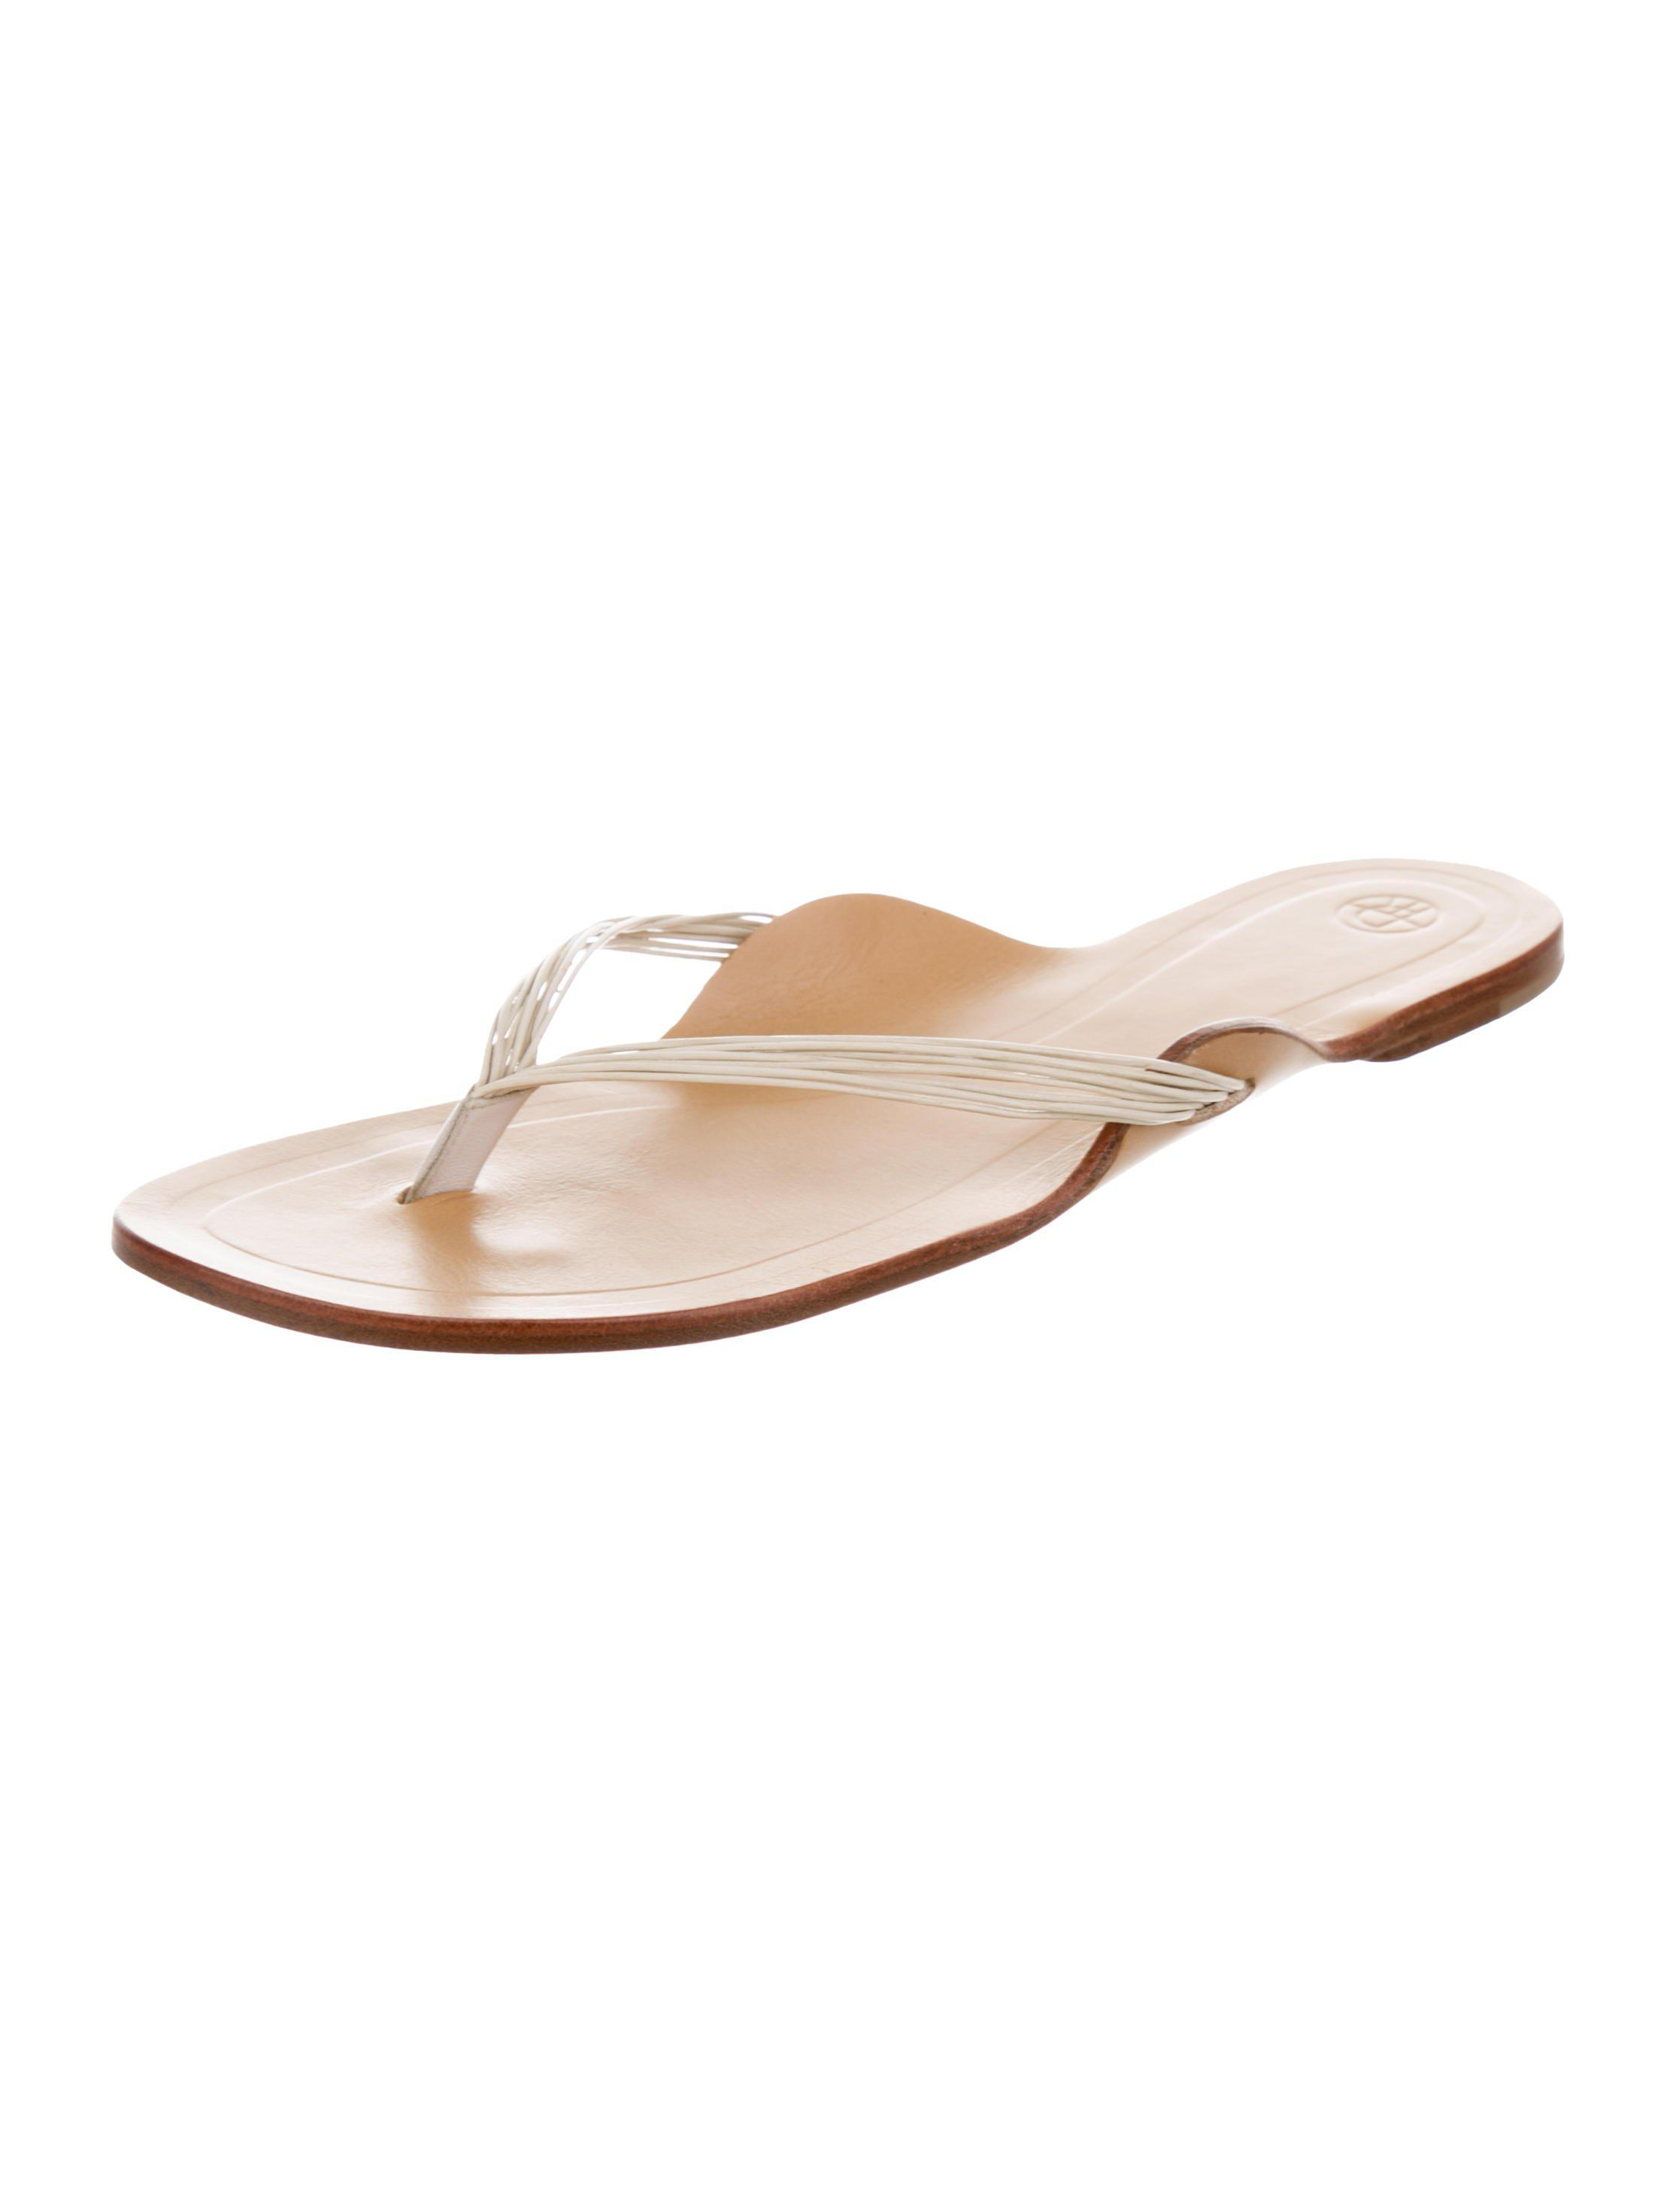 The Row Casablanca Thong Slide Sandals w/ Tags exclusive for sale wiki sale wide range of vLX61a6y